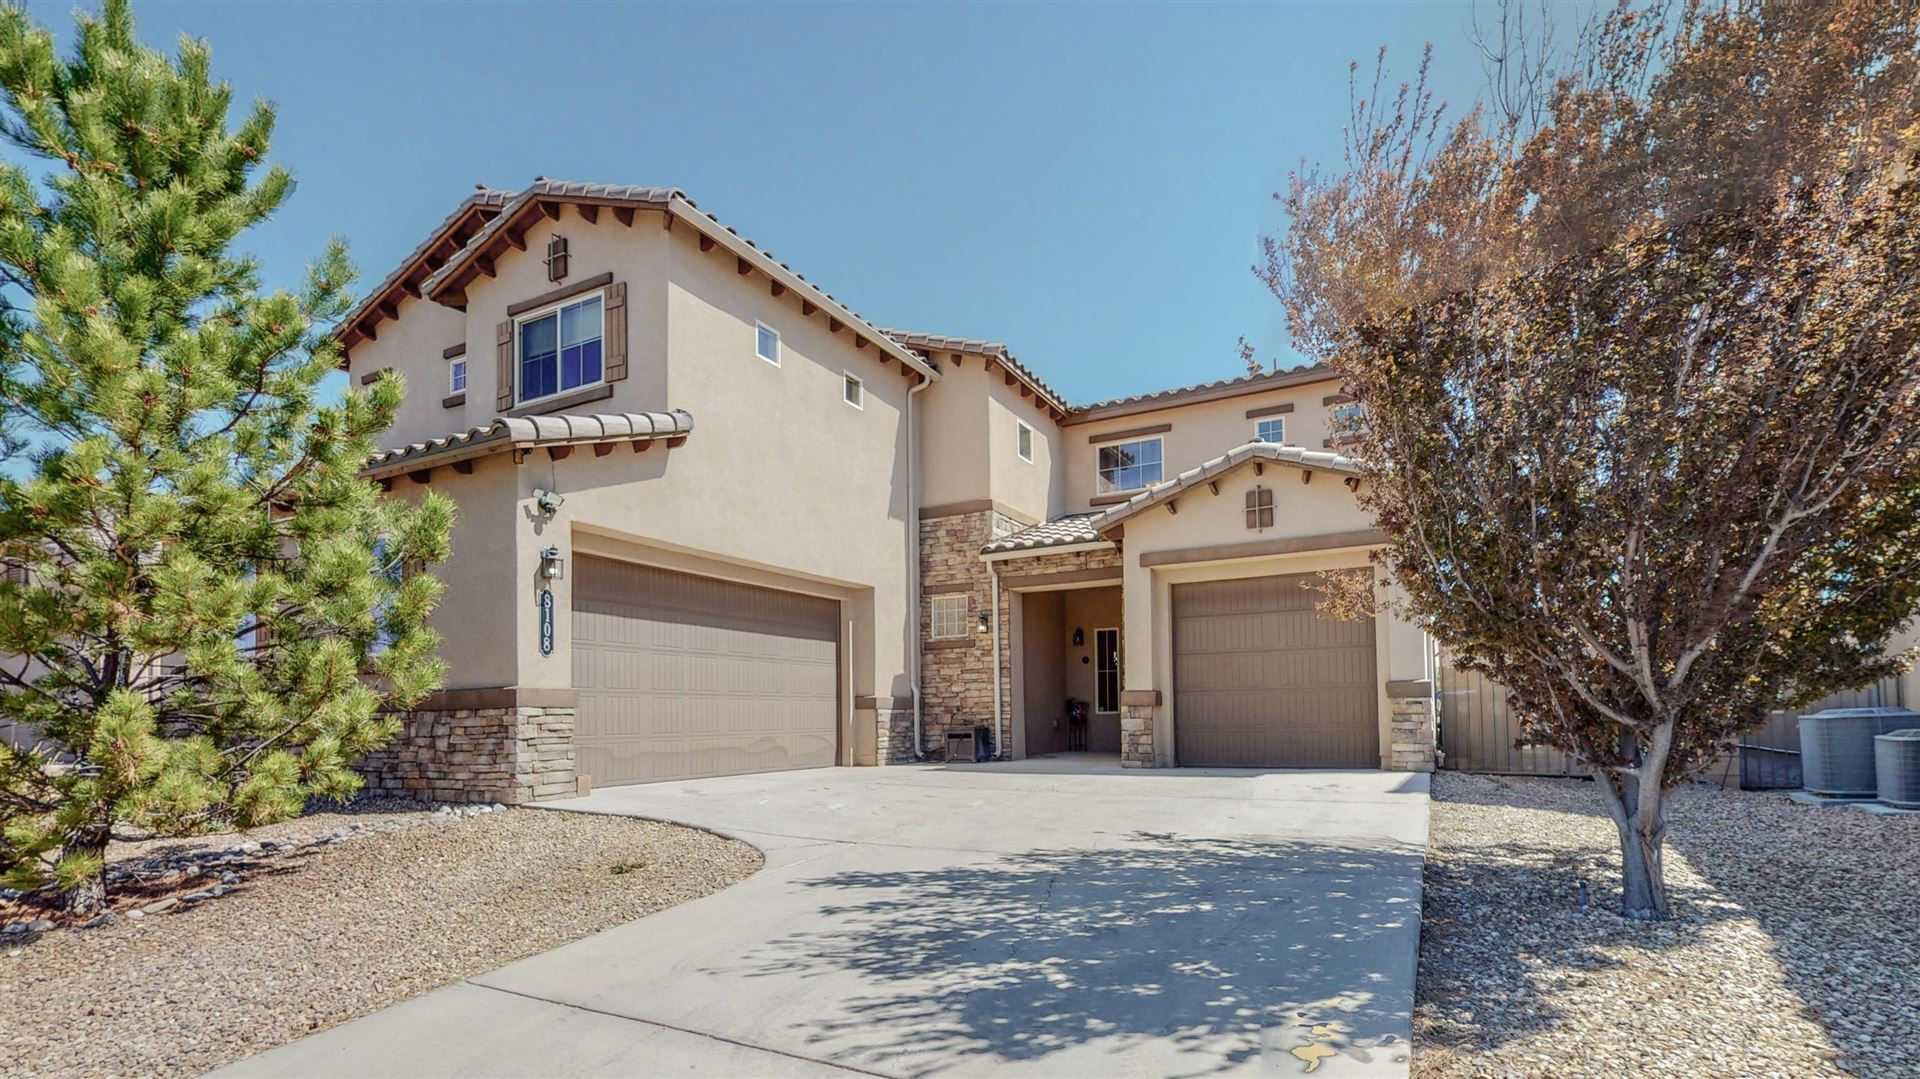 8108 CHICORY Drive NW, Albuquerque, NM 87120 - #: 989211